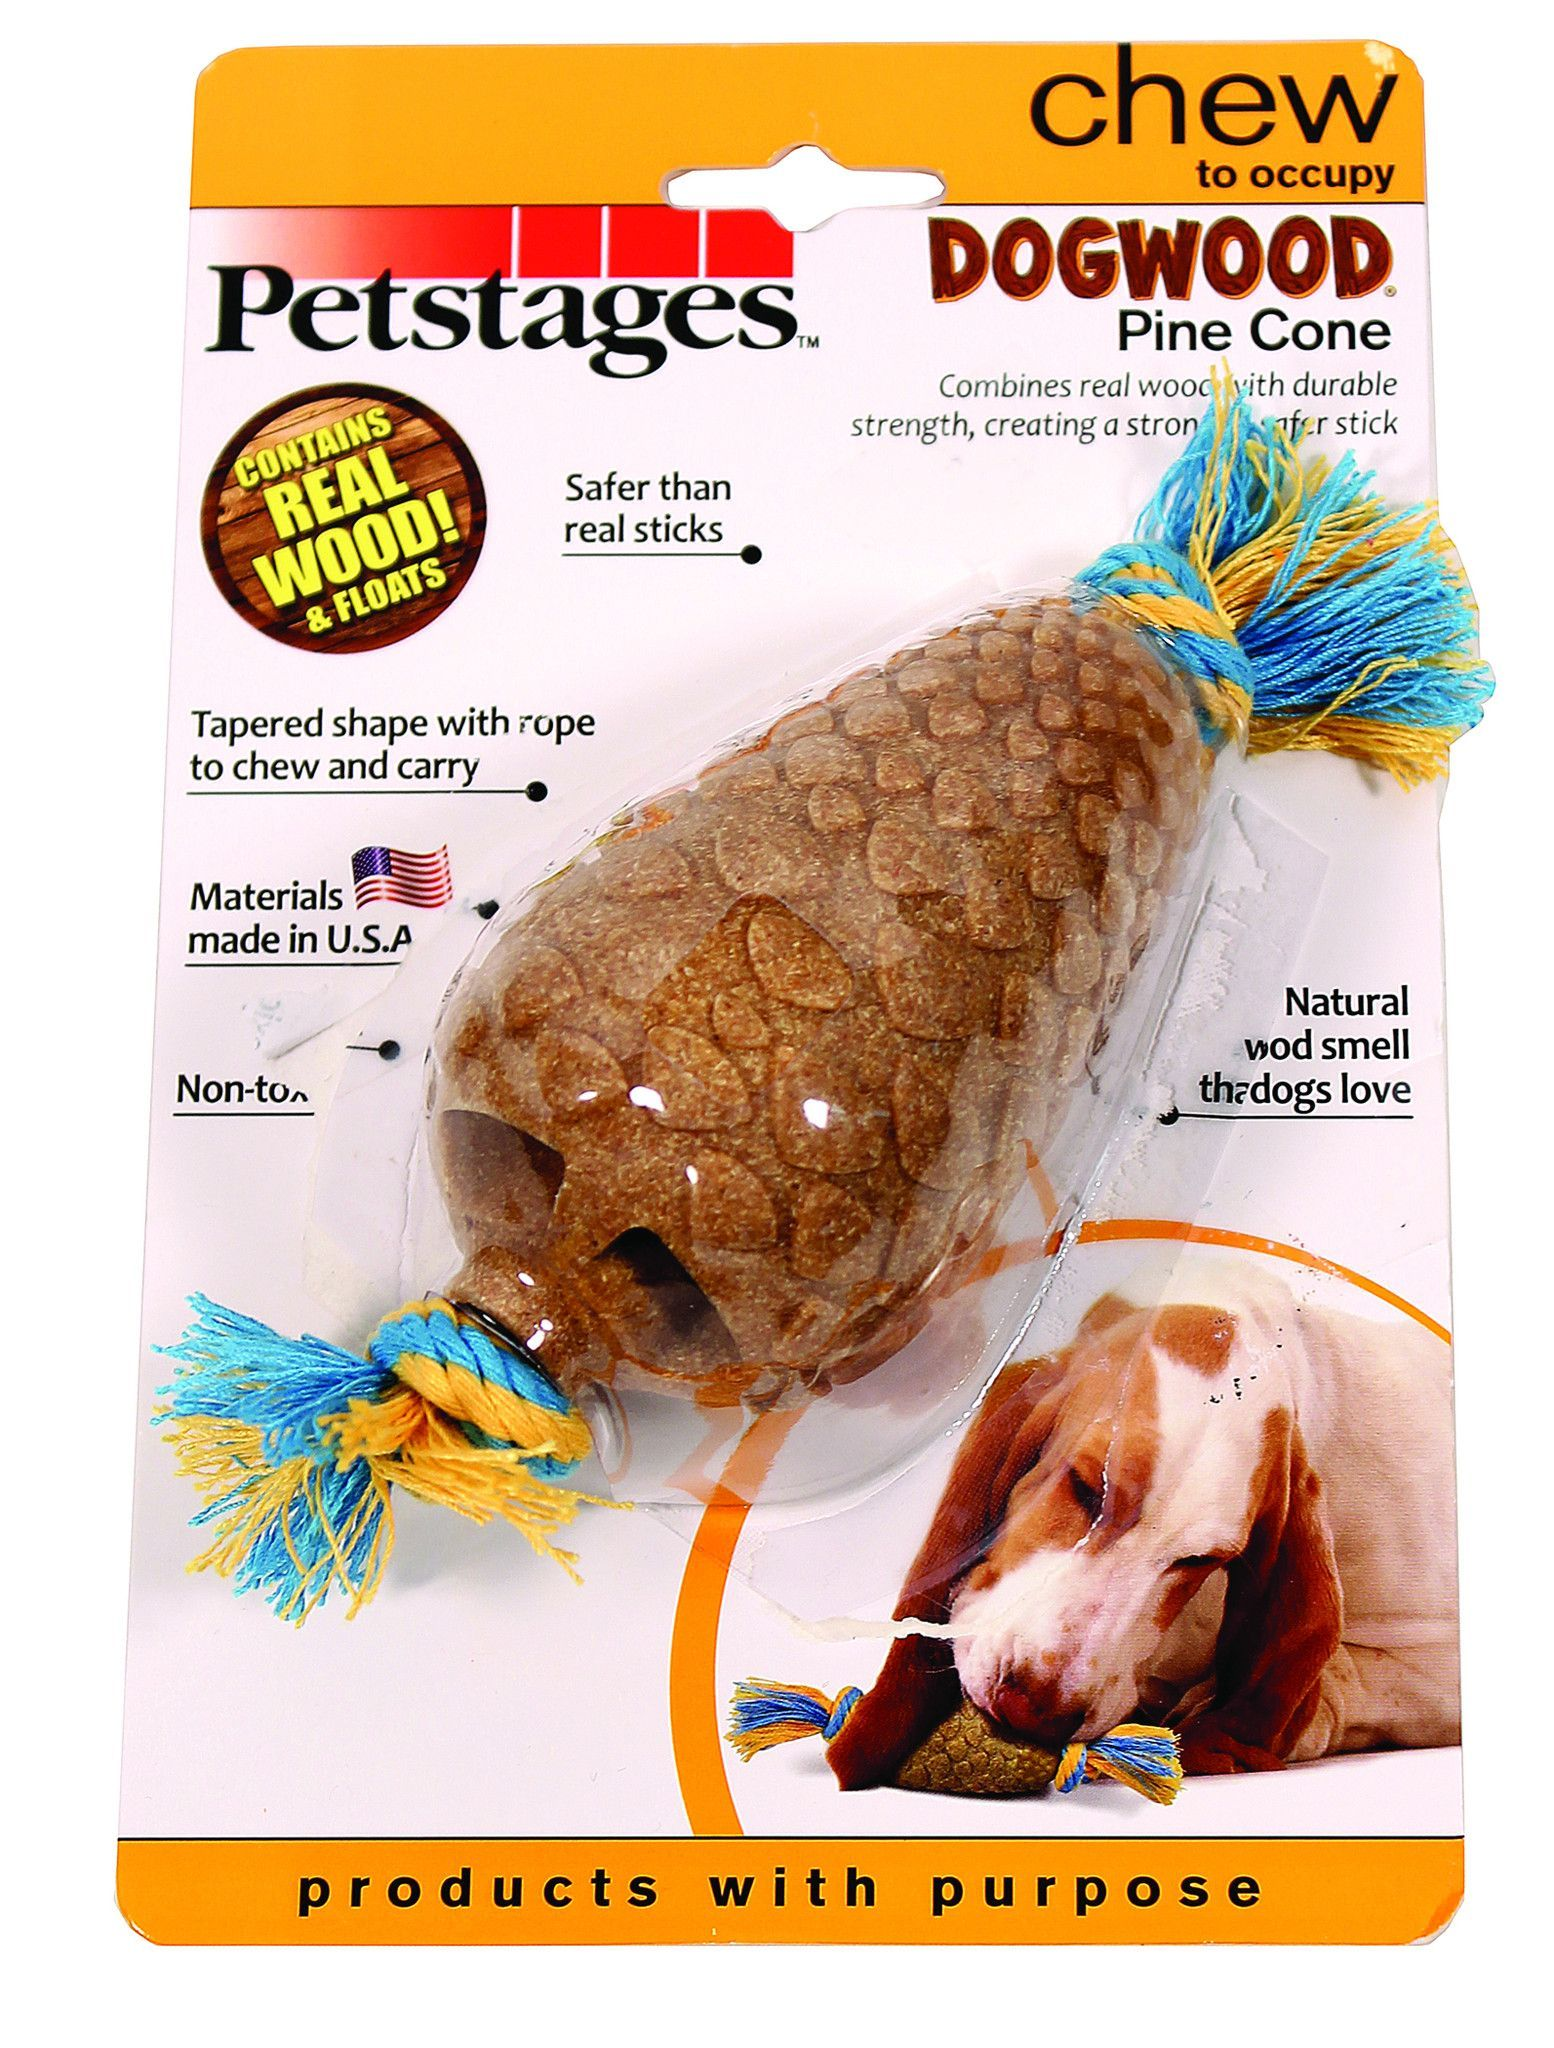 Dogwood Pine Cone Dog Chew Toy With Images Petstages Dog Chew